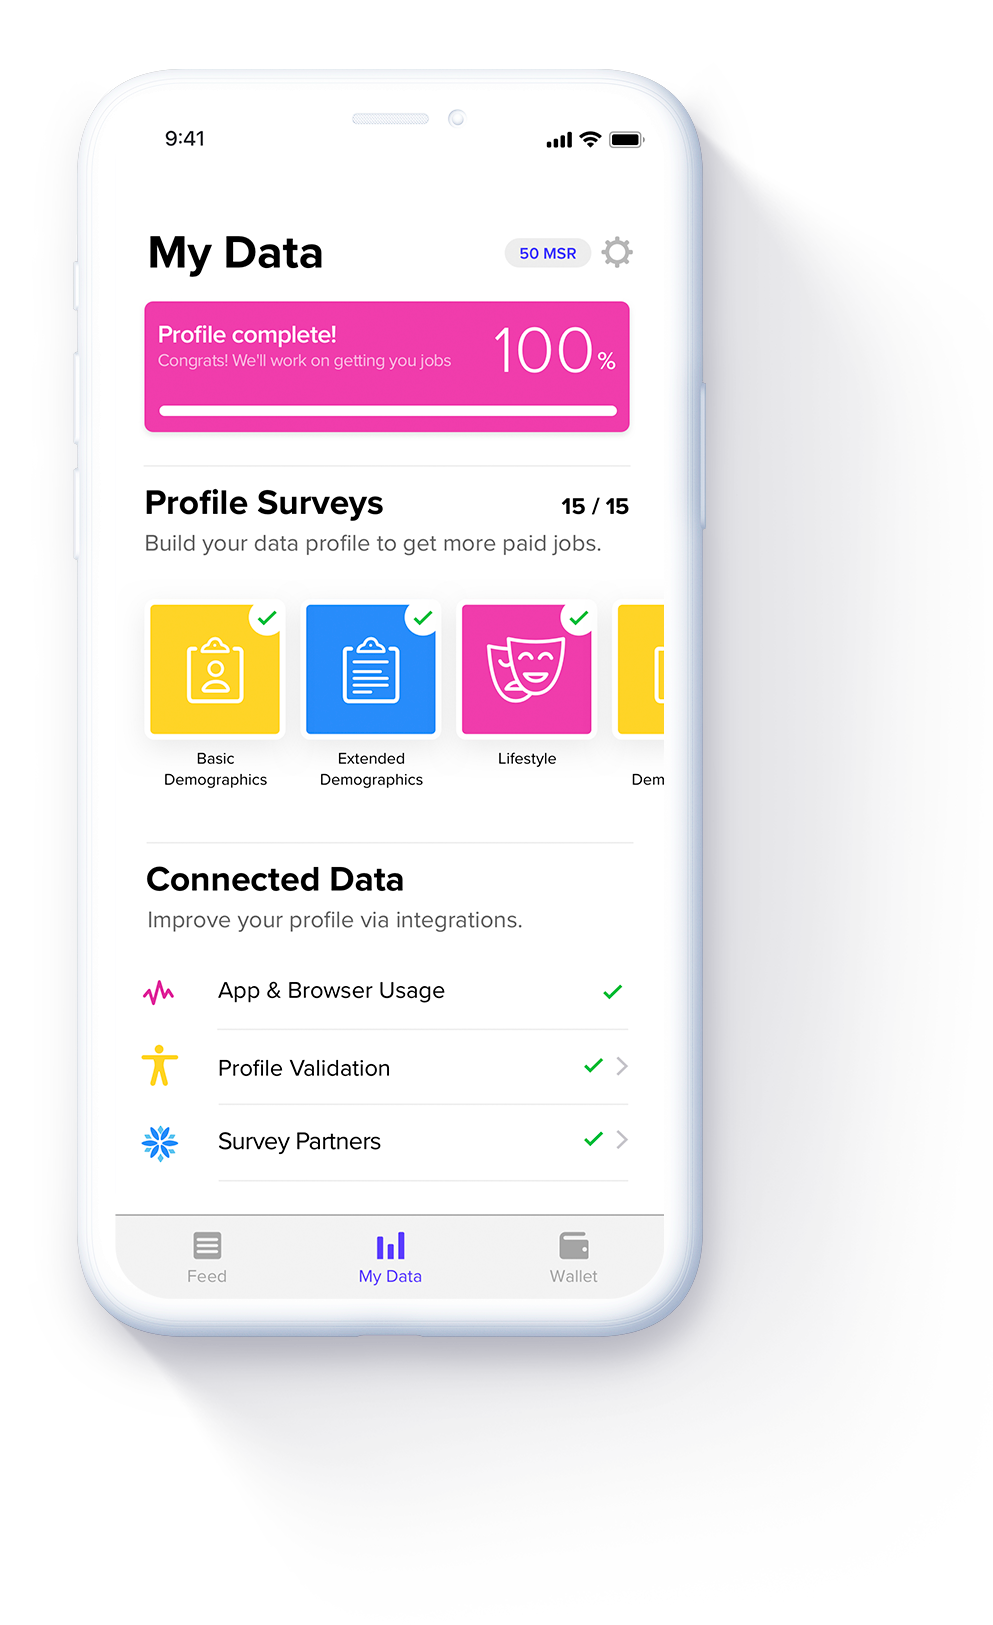 MSR App - My Data page for app users